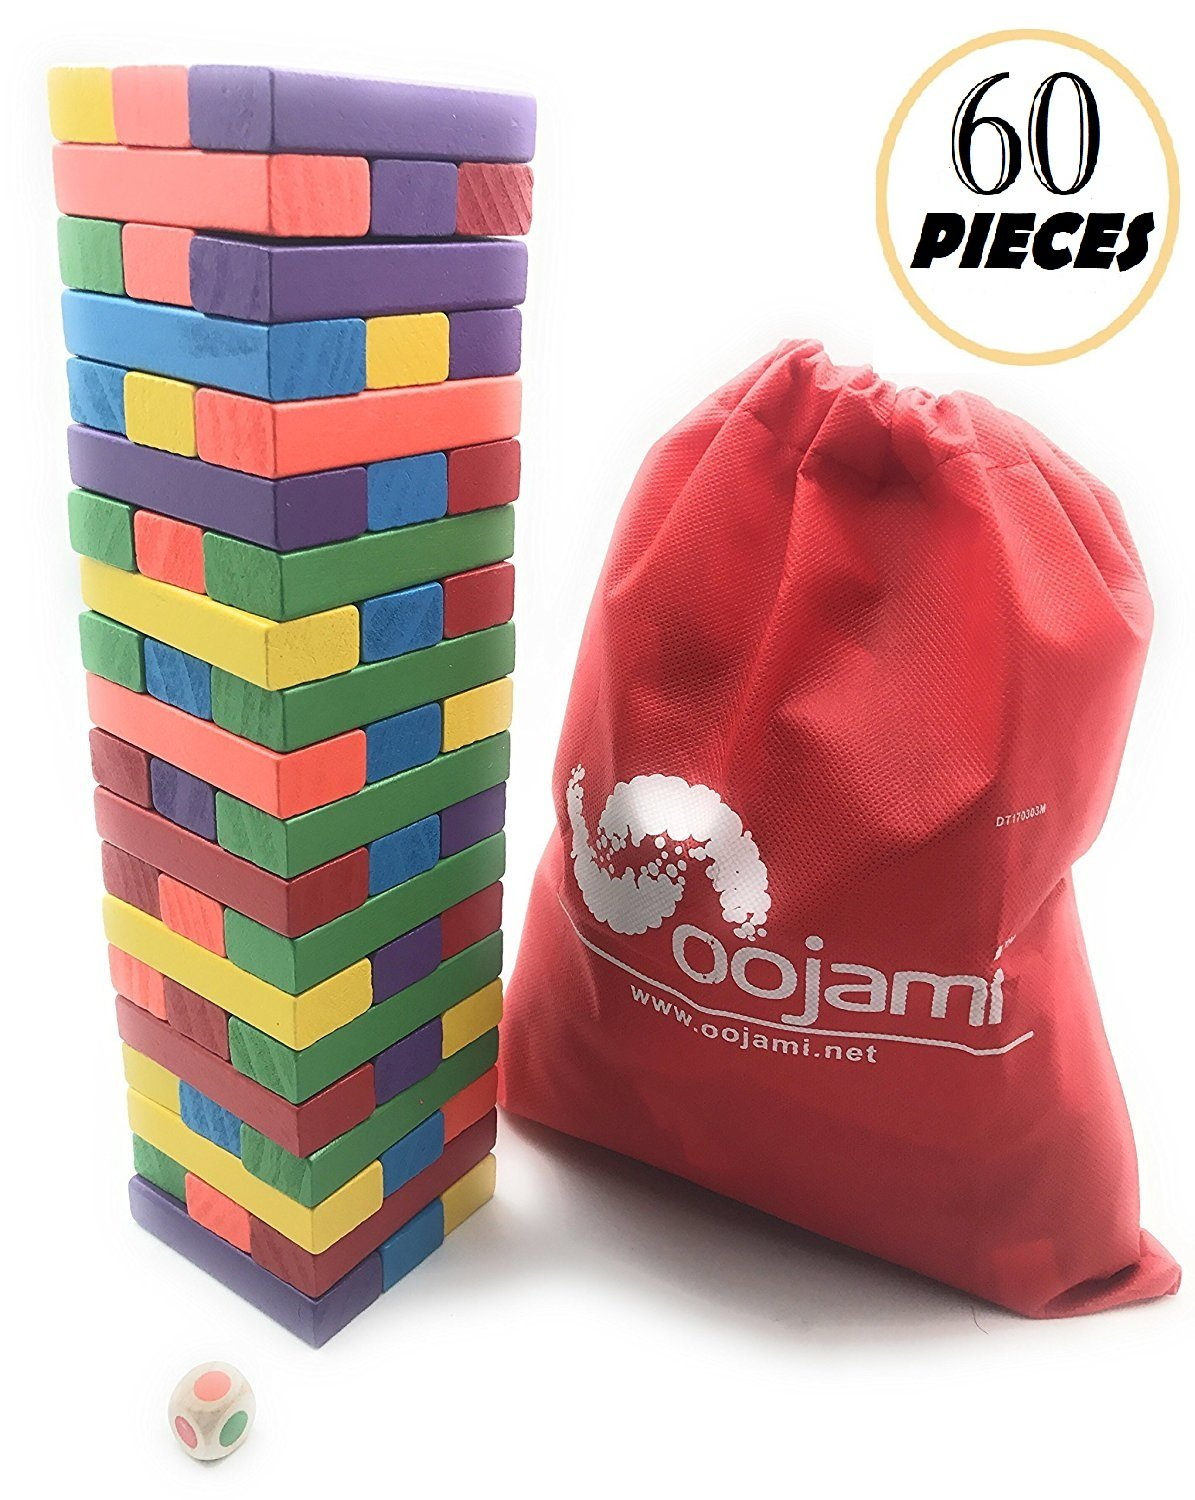 Wooden Toppling Tumbling Stacking Tower Board Games Building Blocks for Kids - 60 pieces